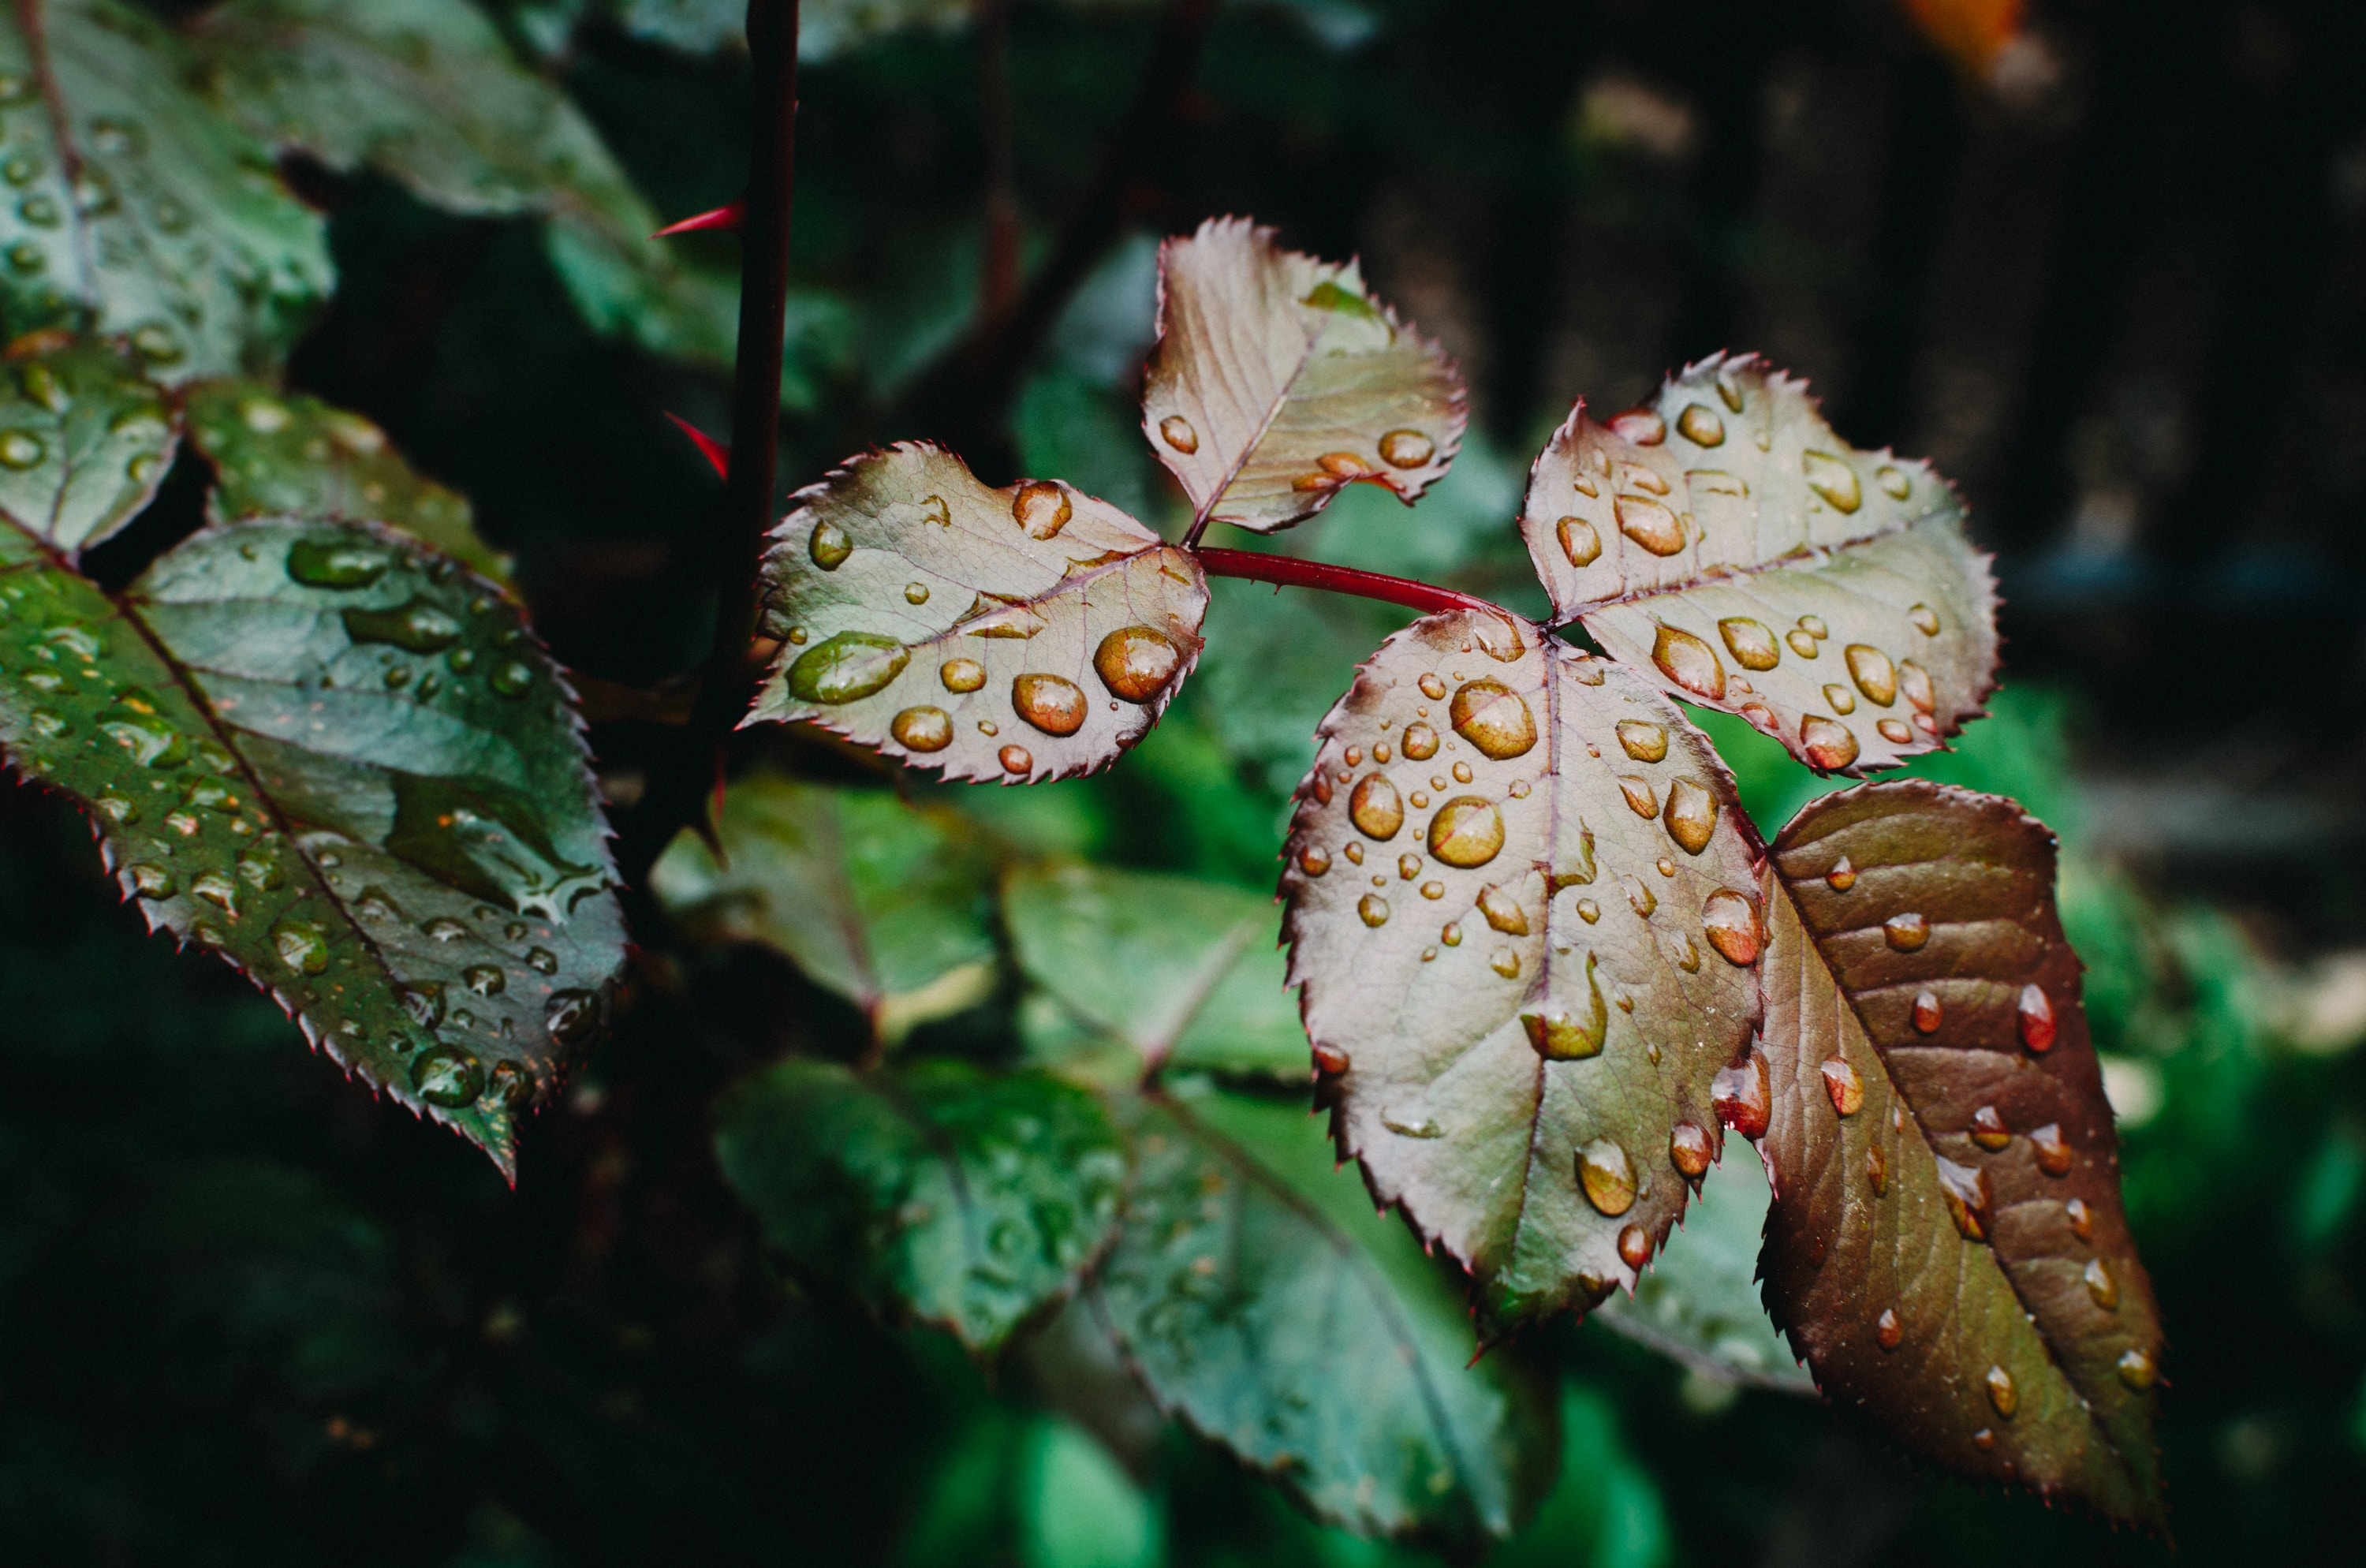 How RAIN might help us to calm down